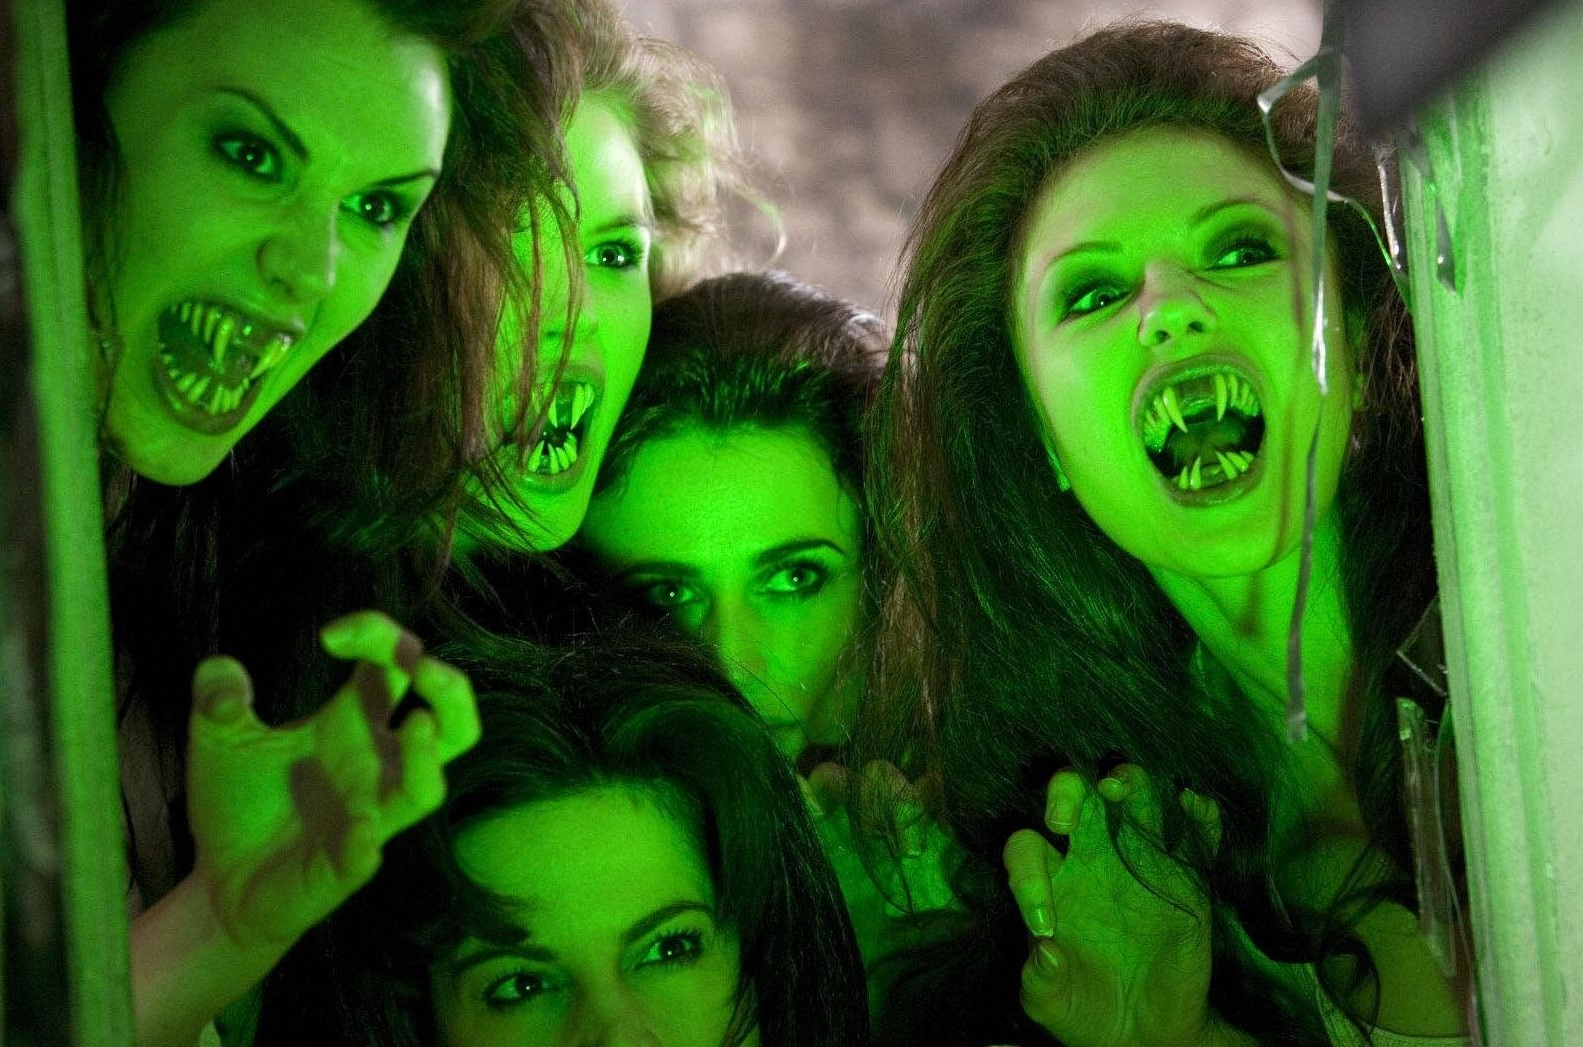 Tasting The Blood: What Inspires Doctor Who's Idea of Vampires?